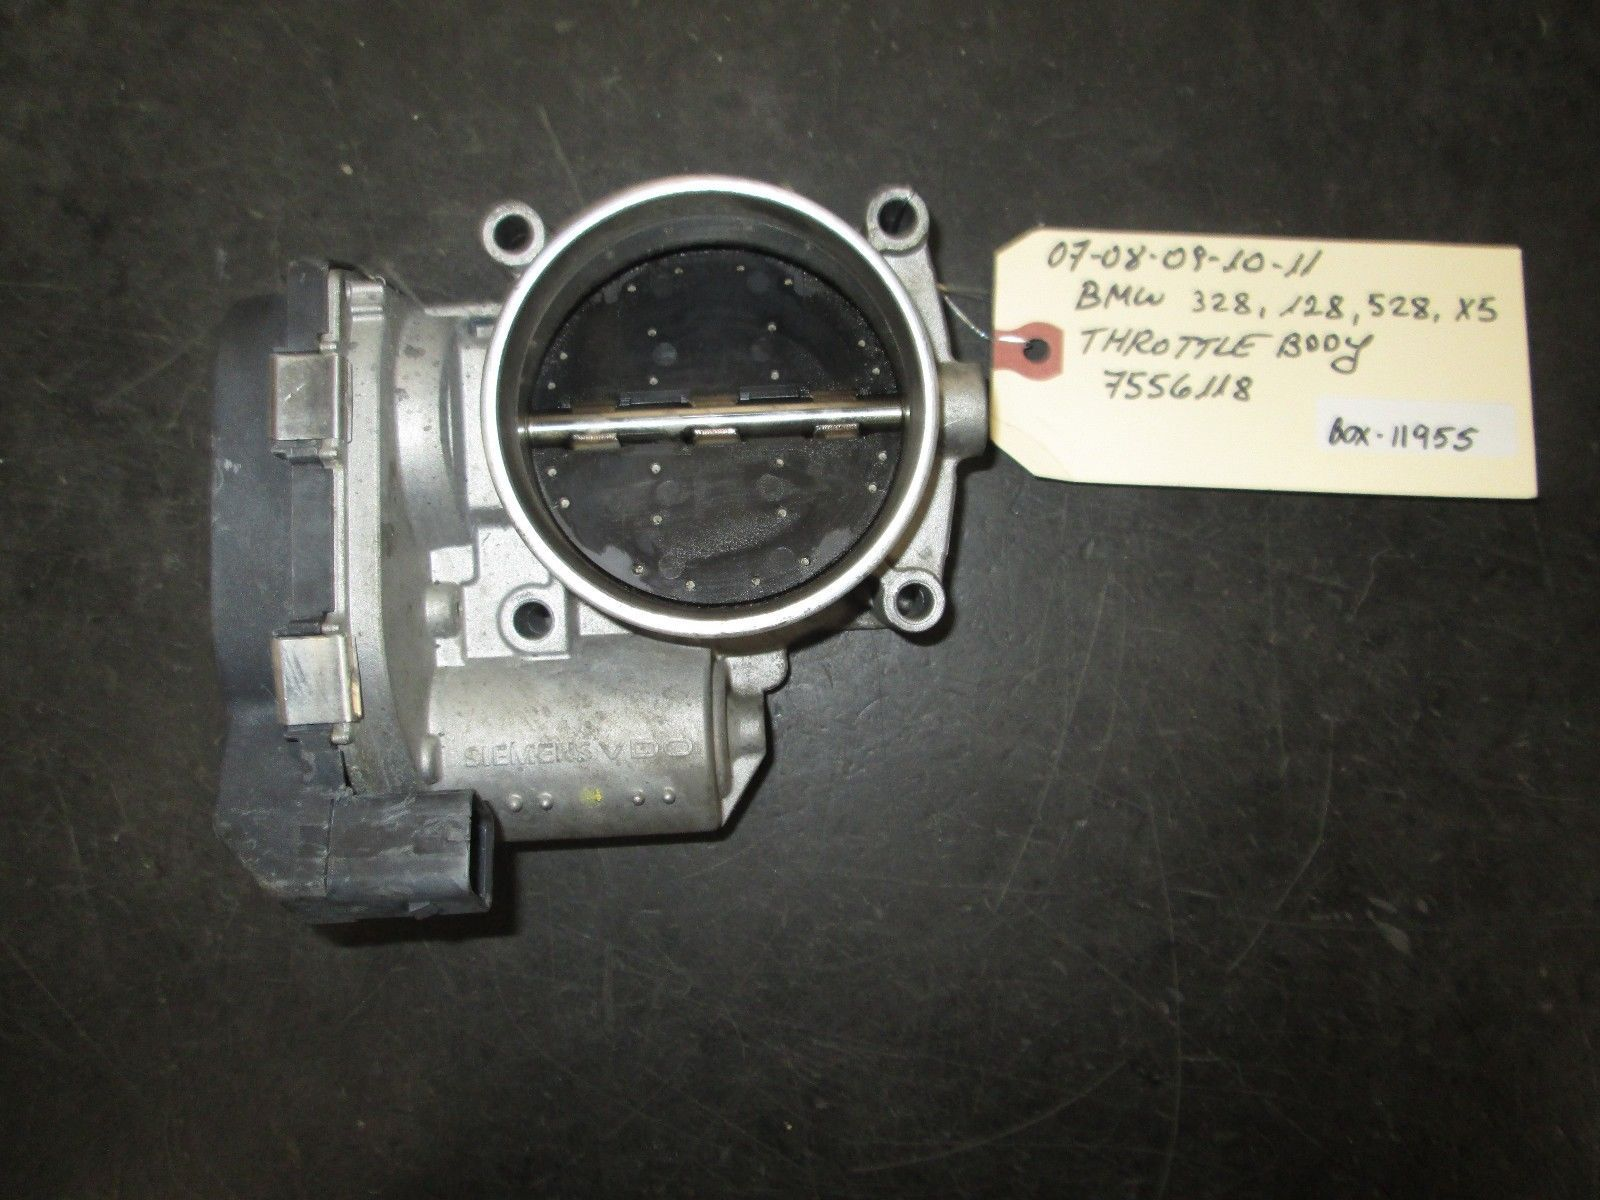 Primary image for 07 08 09 10 11 BMW 328,128,528,X5 THROTTLE BODY #7556118 *See item*